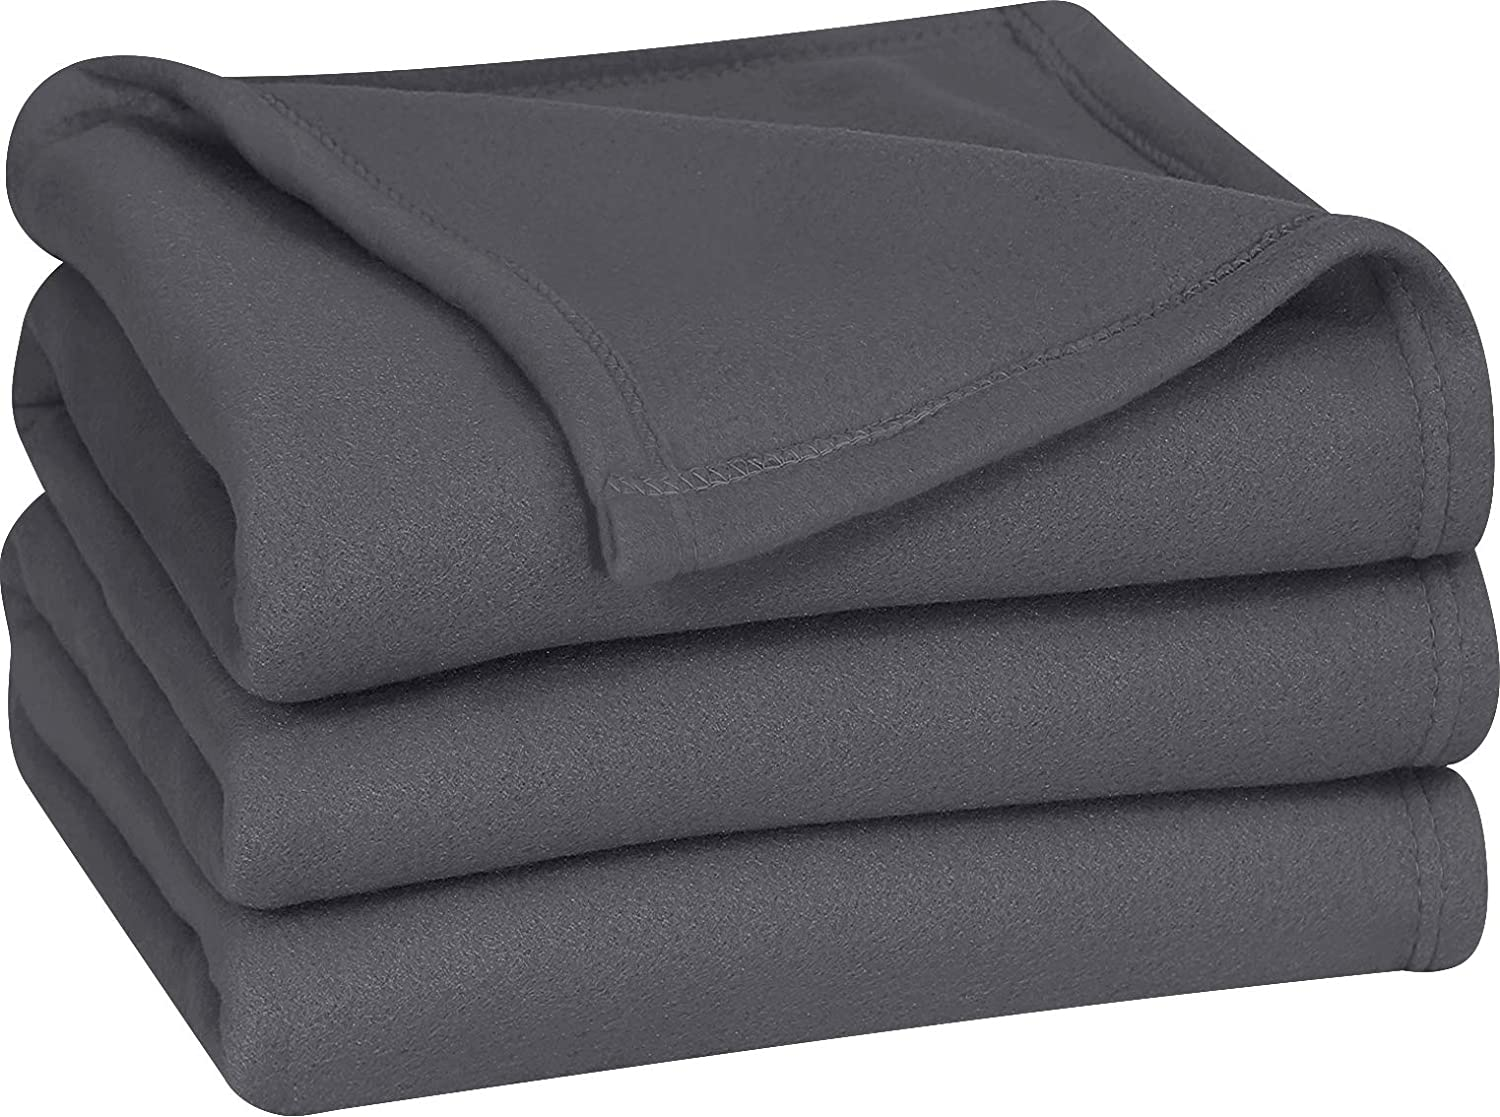 Utopia Bedding Polar Fleece Blanket (Queen, Grey) - Extra Soft Brushed Polyester Fabric - Lightweight and Durable Bed/Couch Blanket - Machine Washable